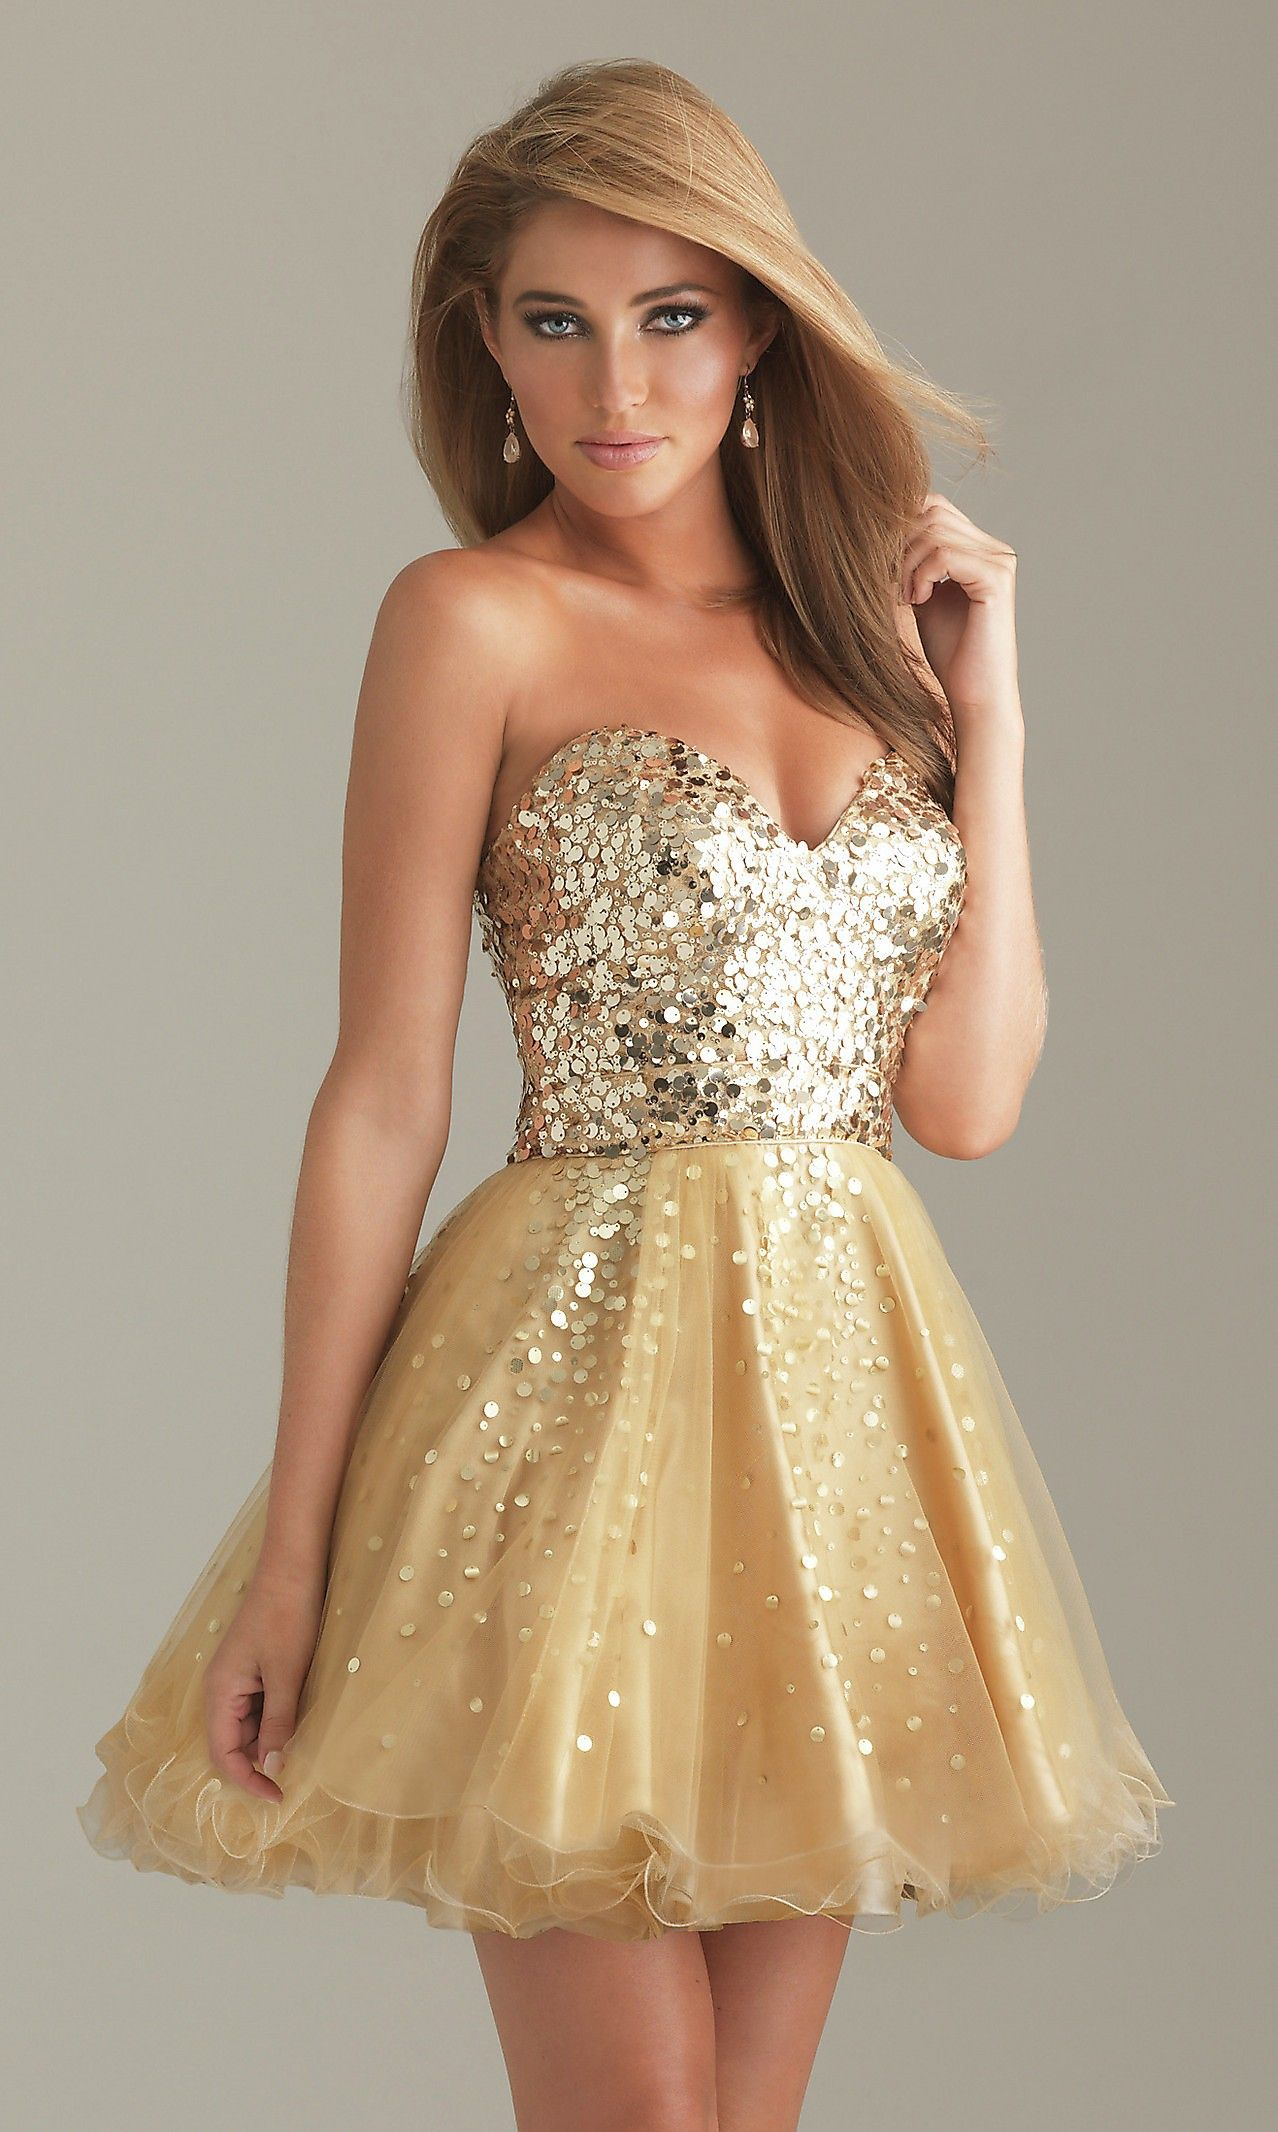 78 Best images about Homecoming Dress on Pinterest - Short ...